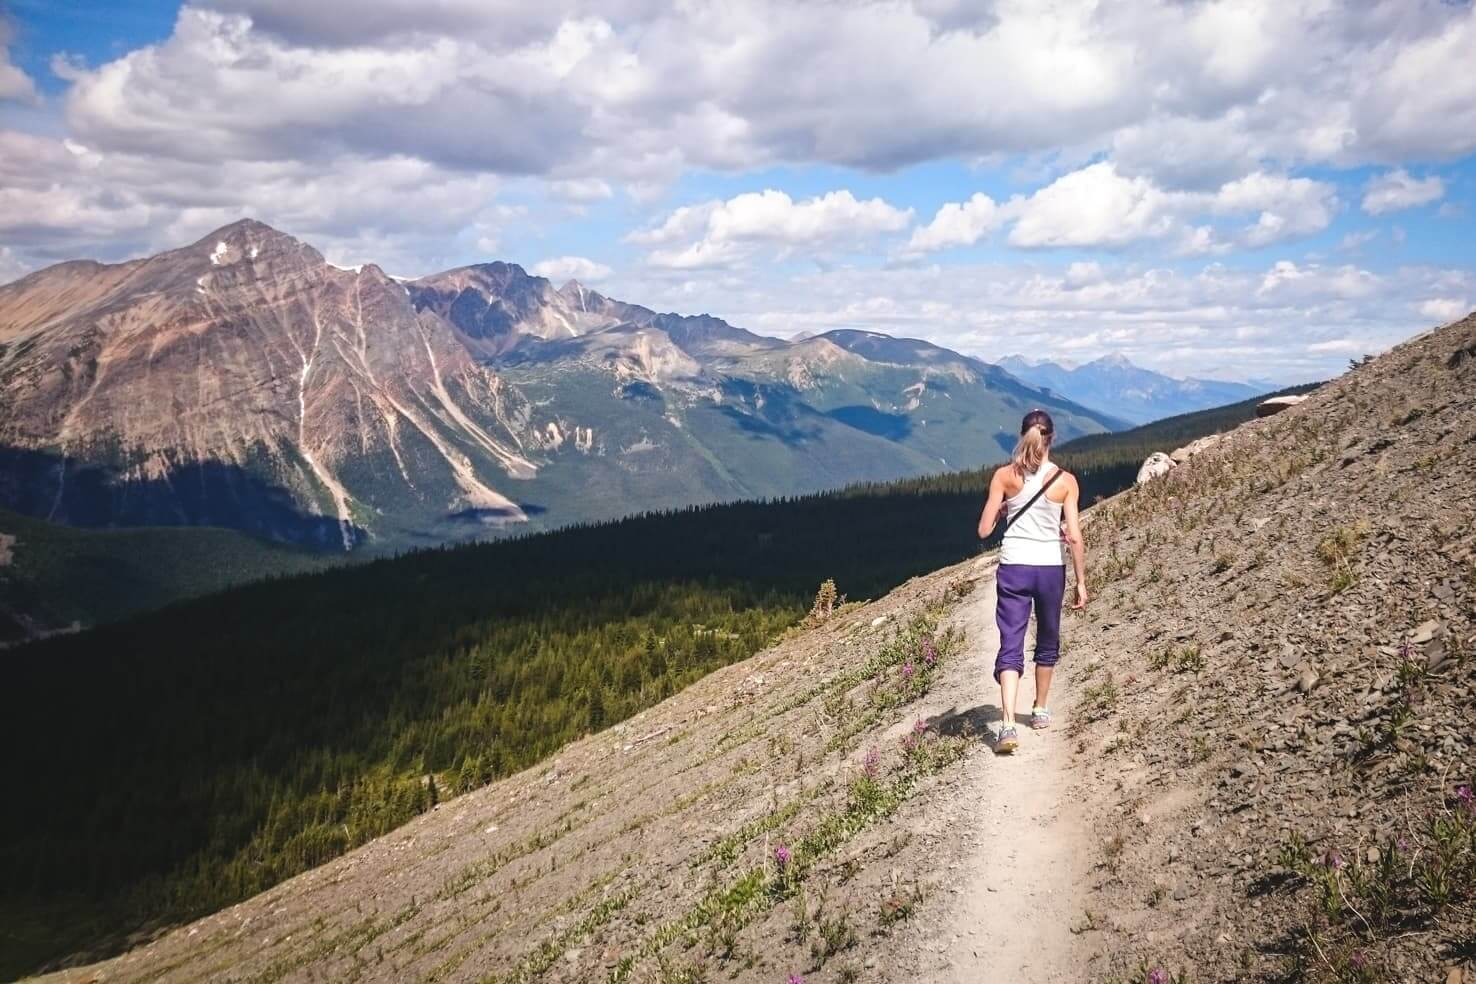 Adventure travel guide to Jasper National Park - Edith Cavell Hike